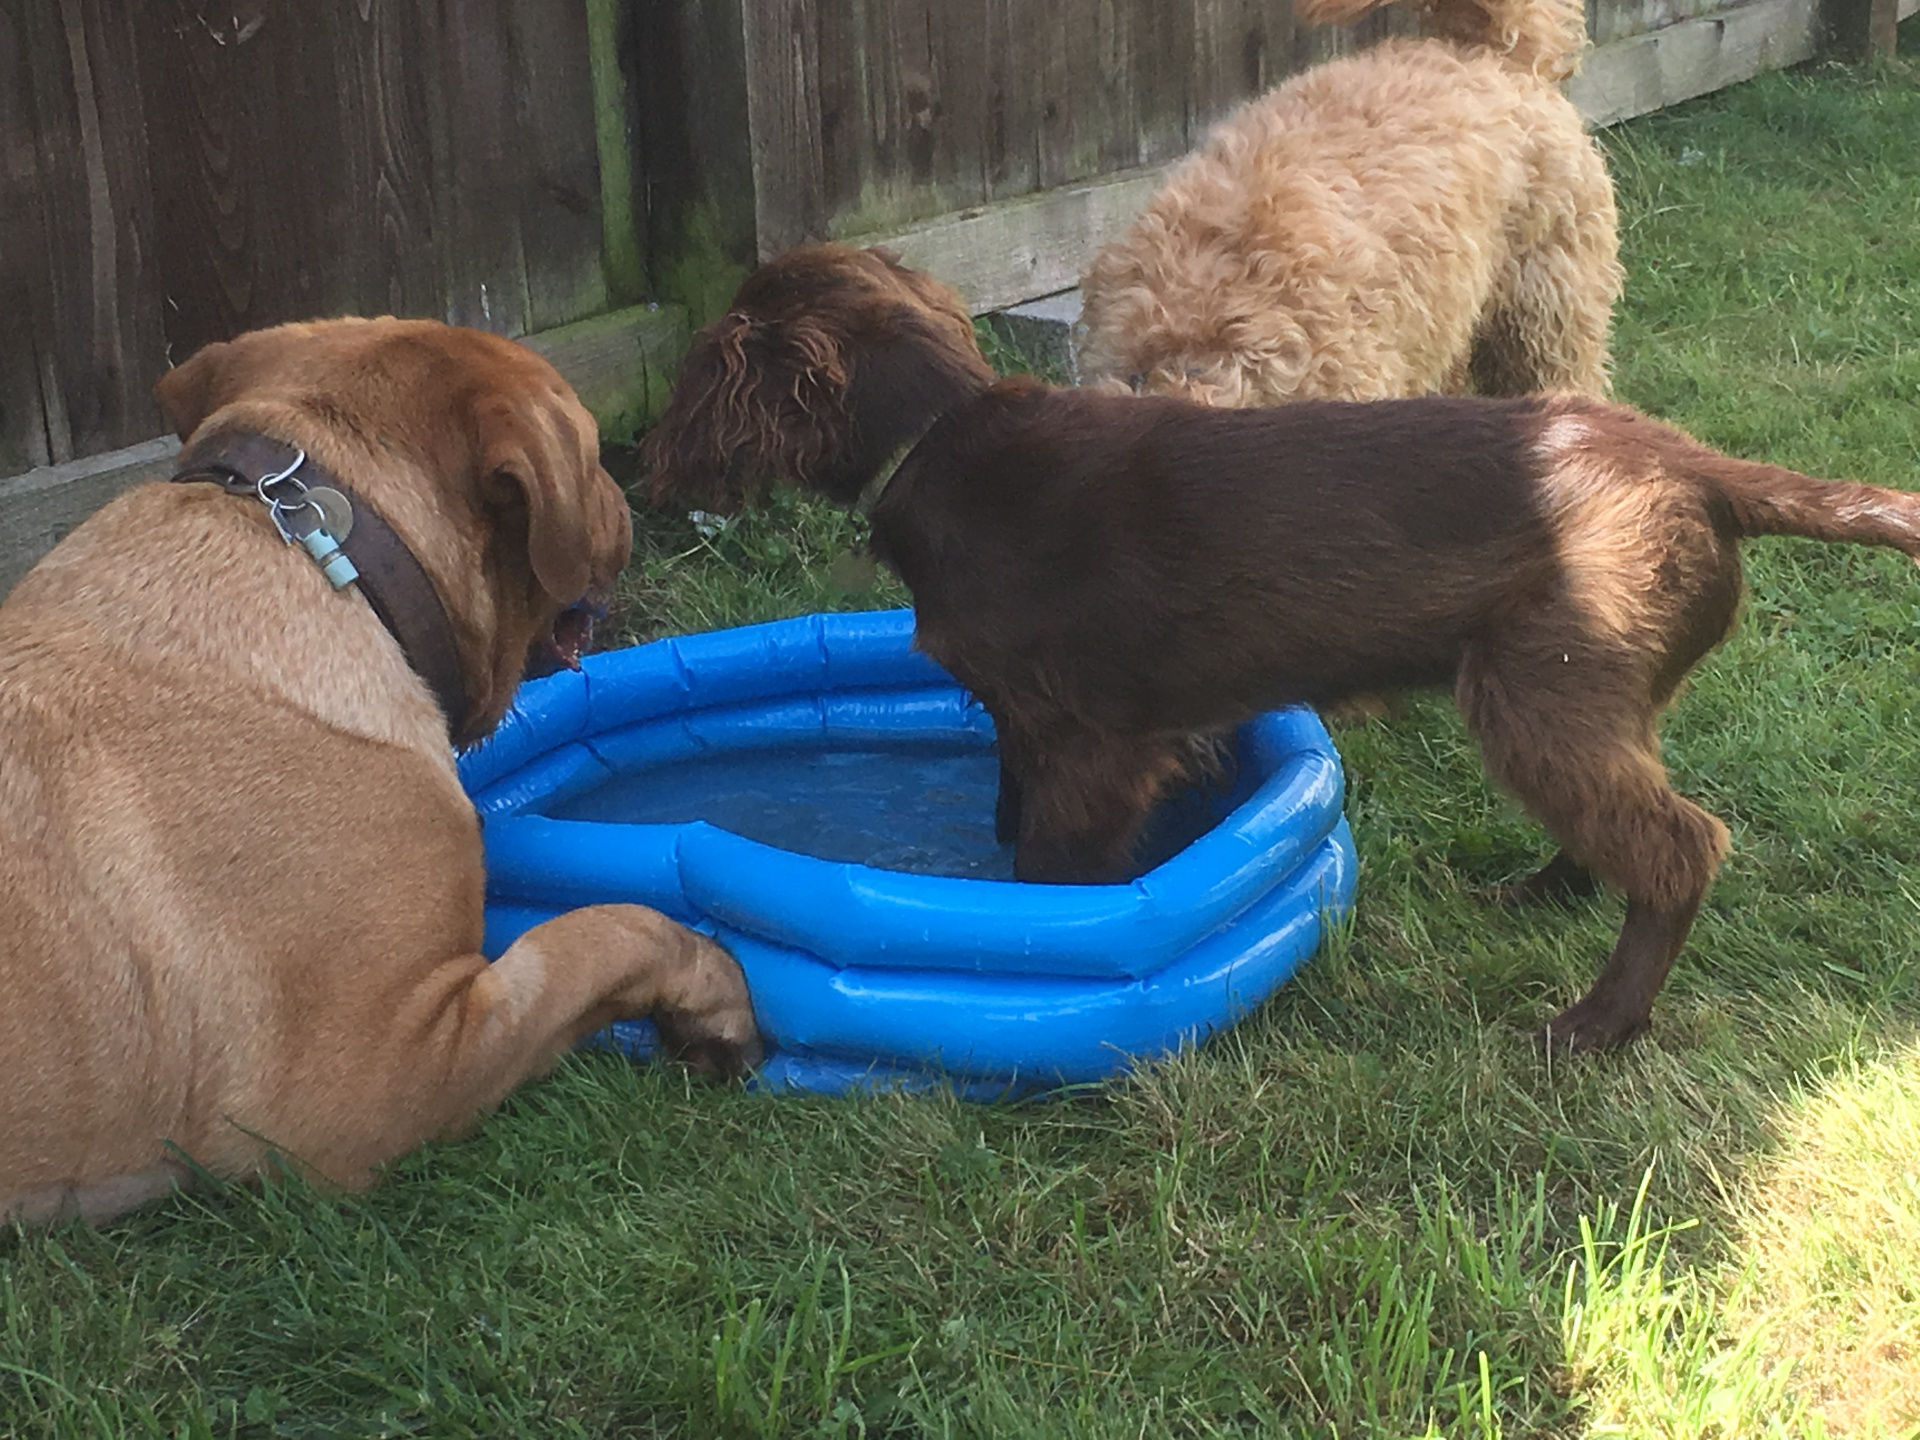 Paddling pool fun